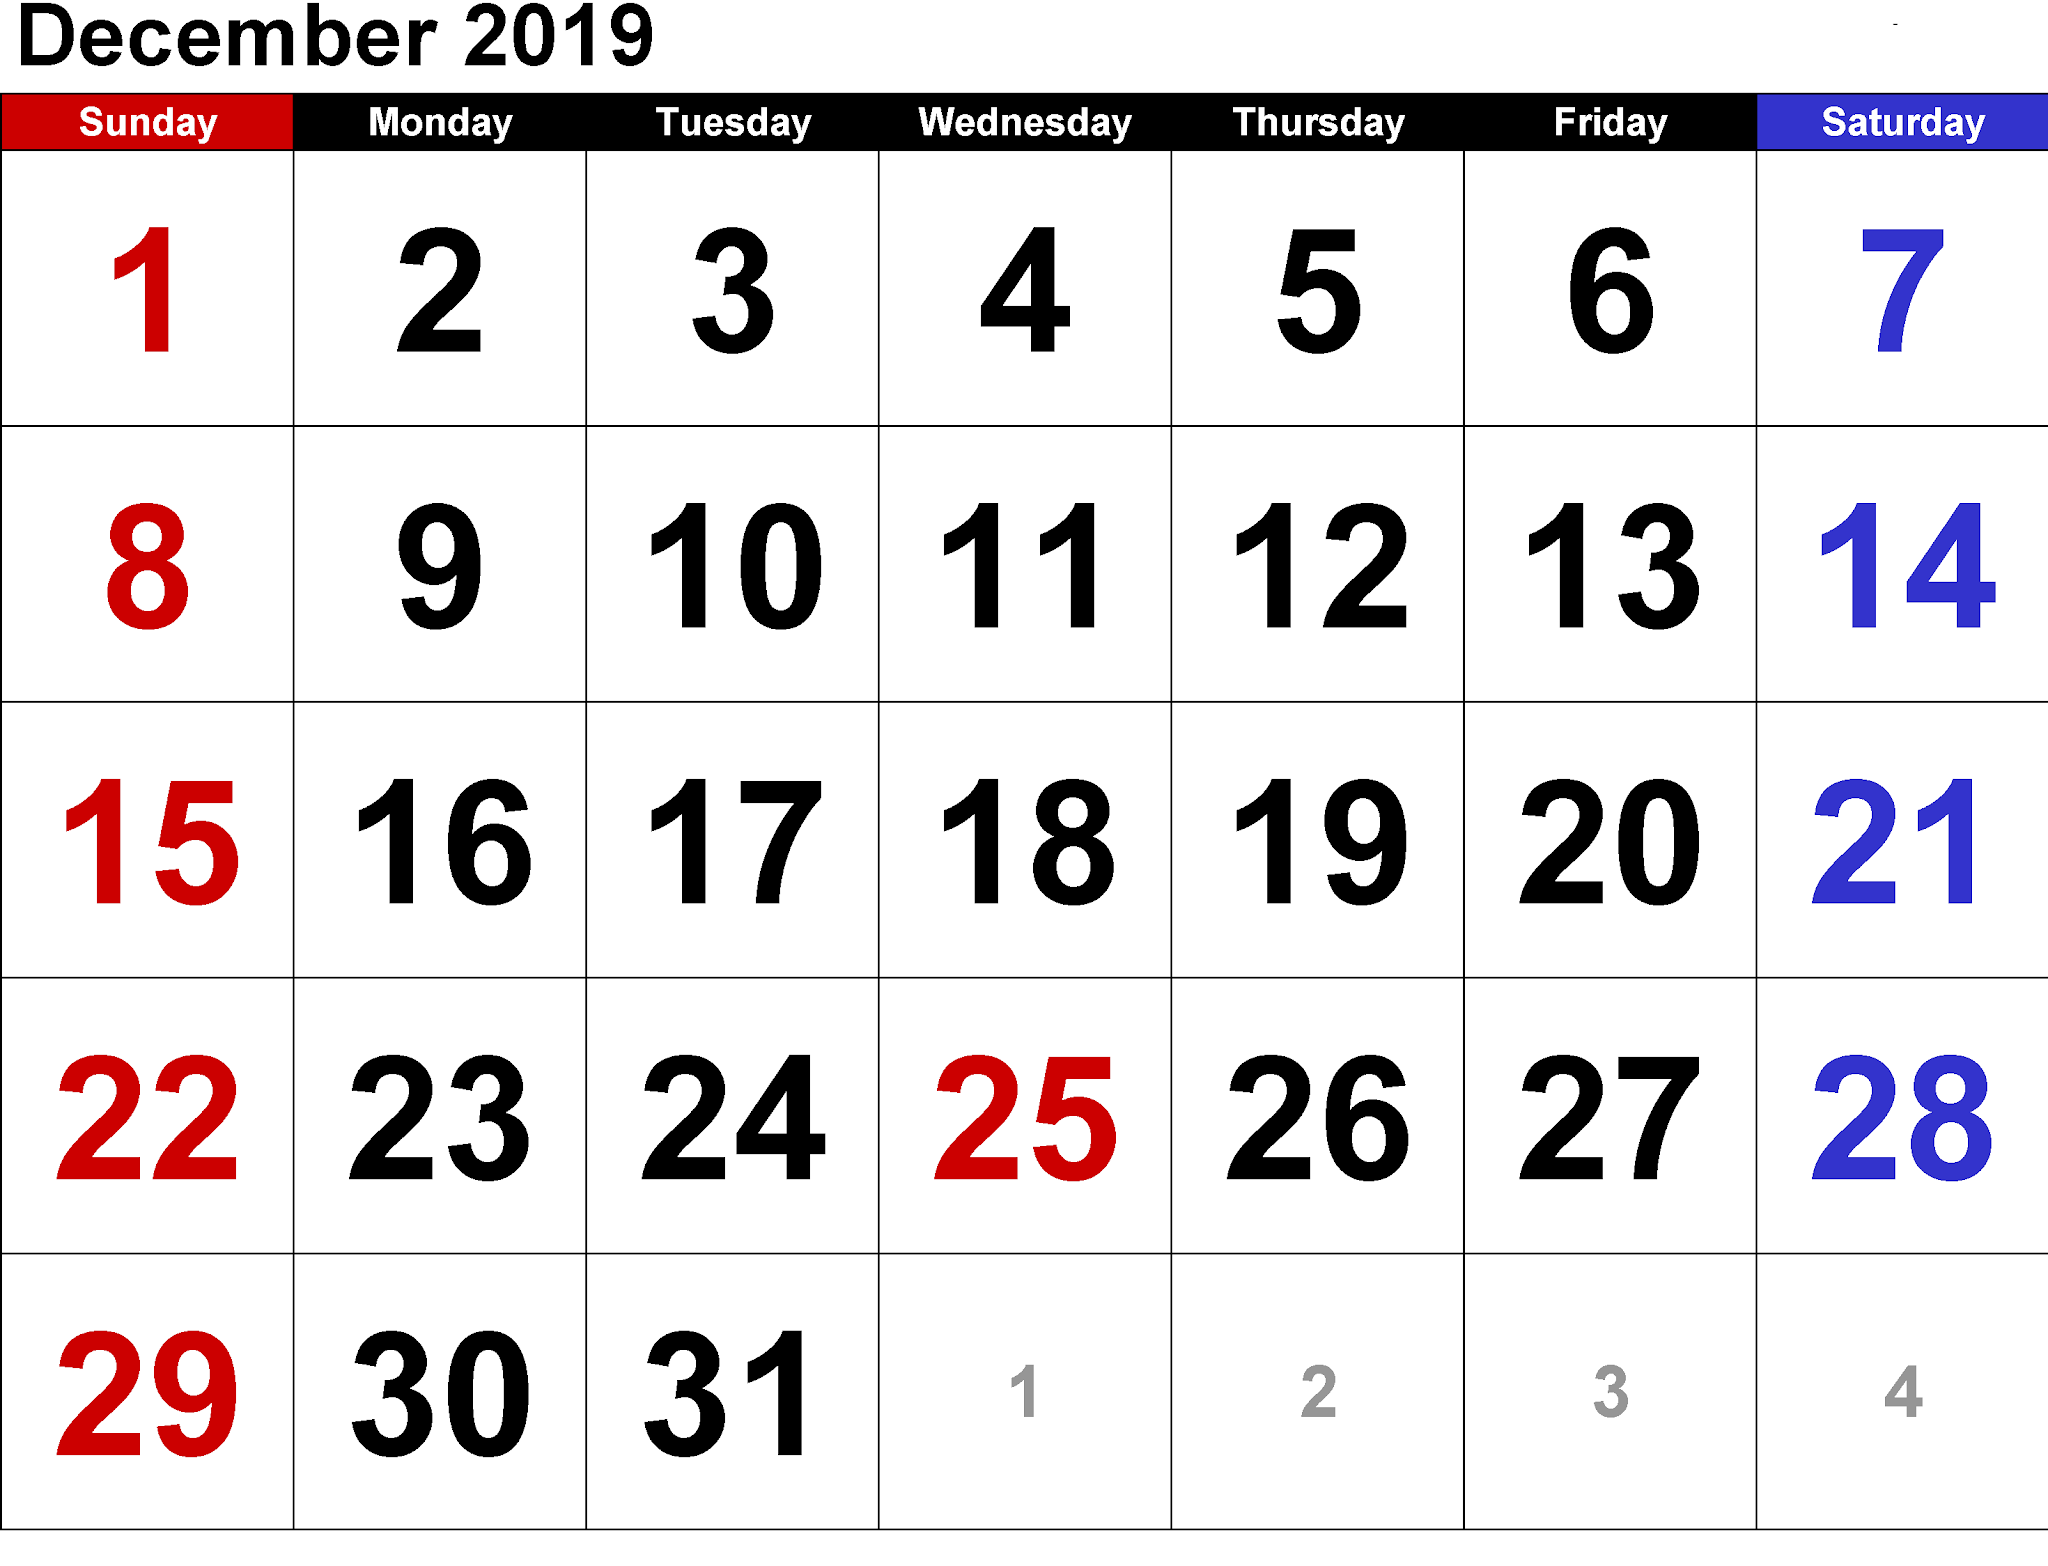 December 2019 Calendar Printable Free Download In Word Excel Pdf